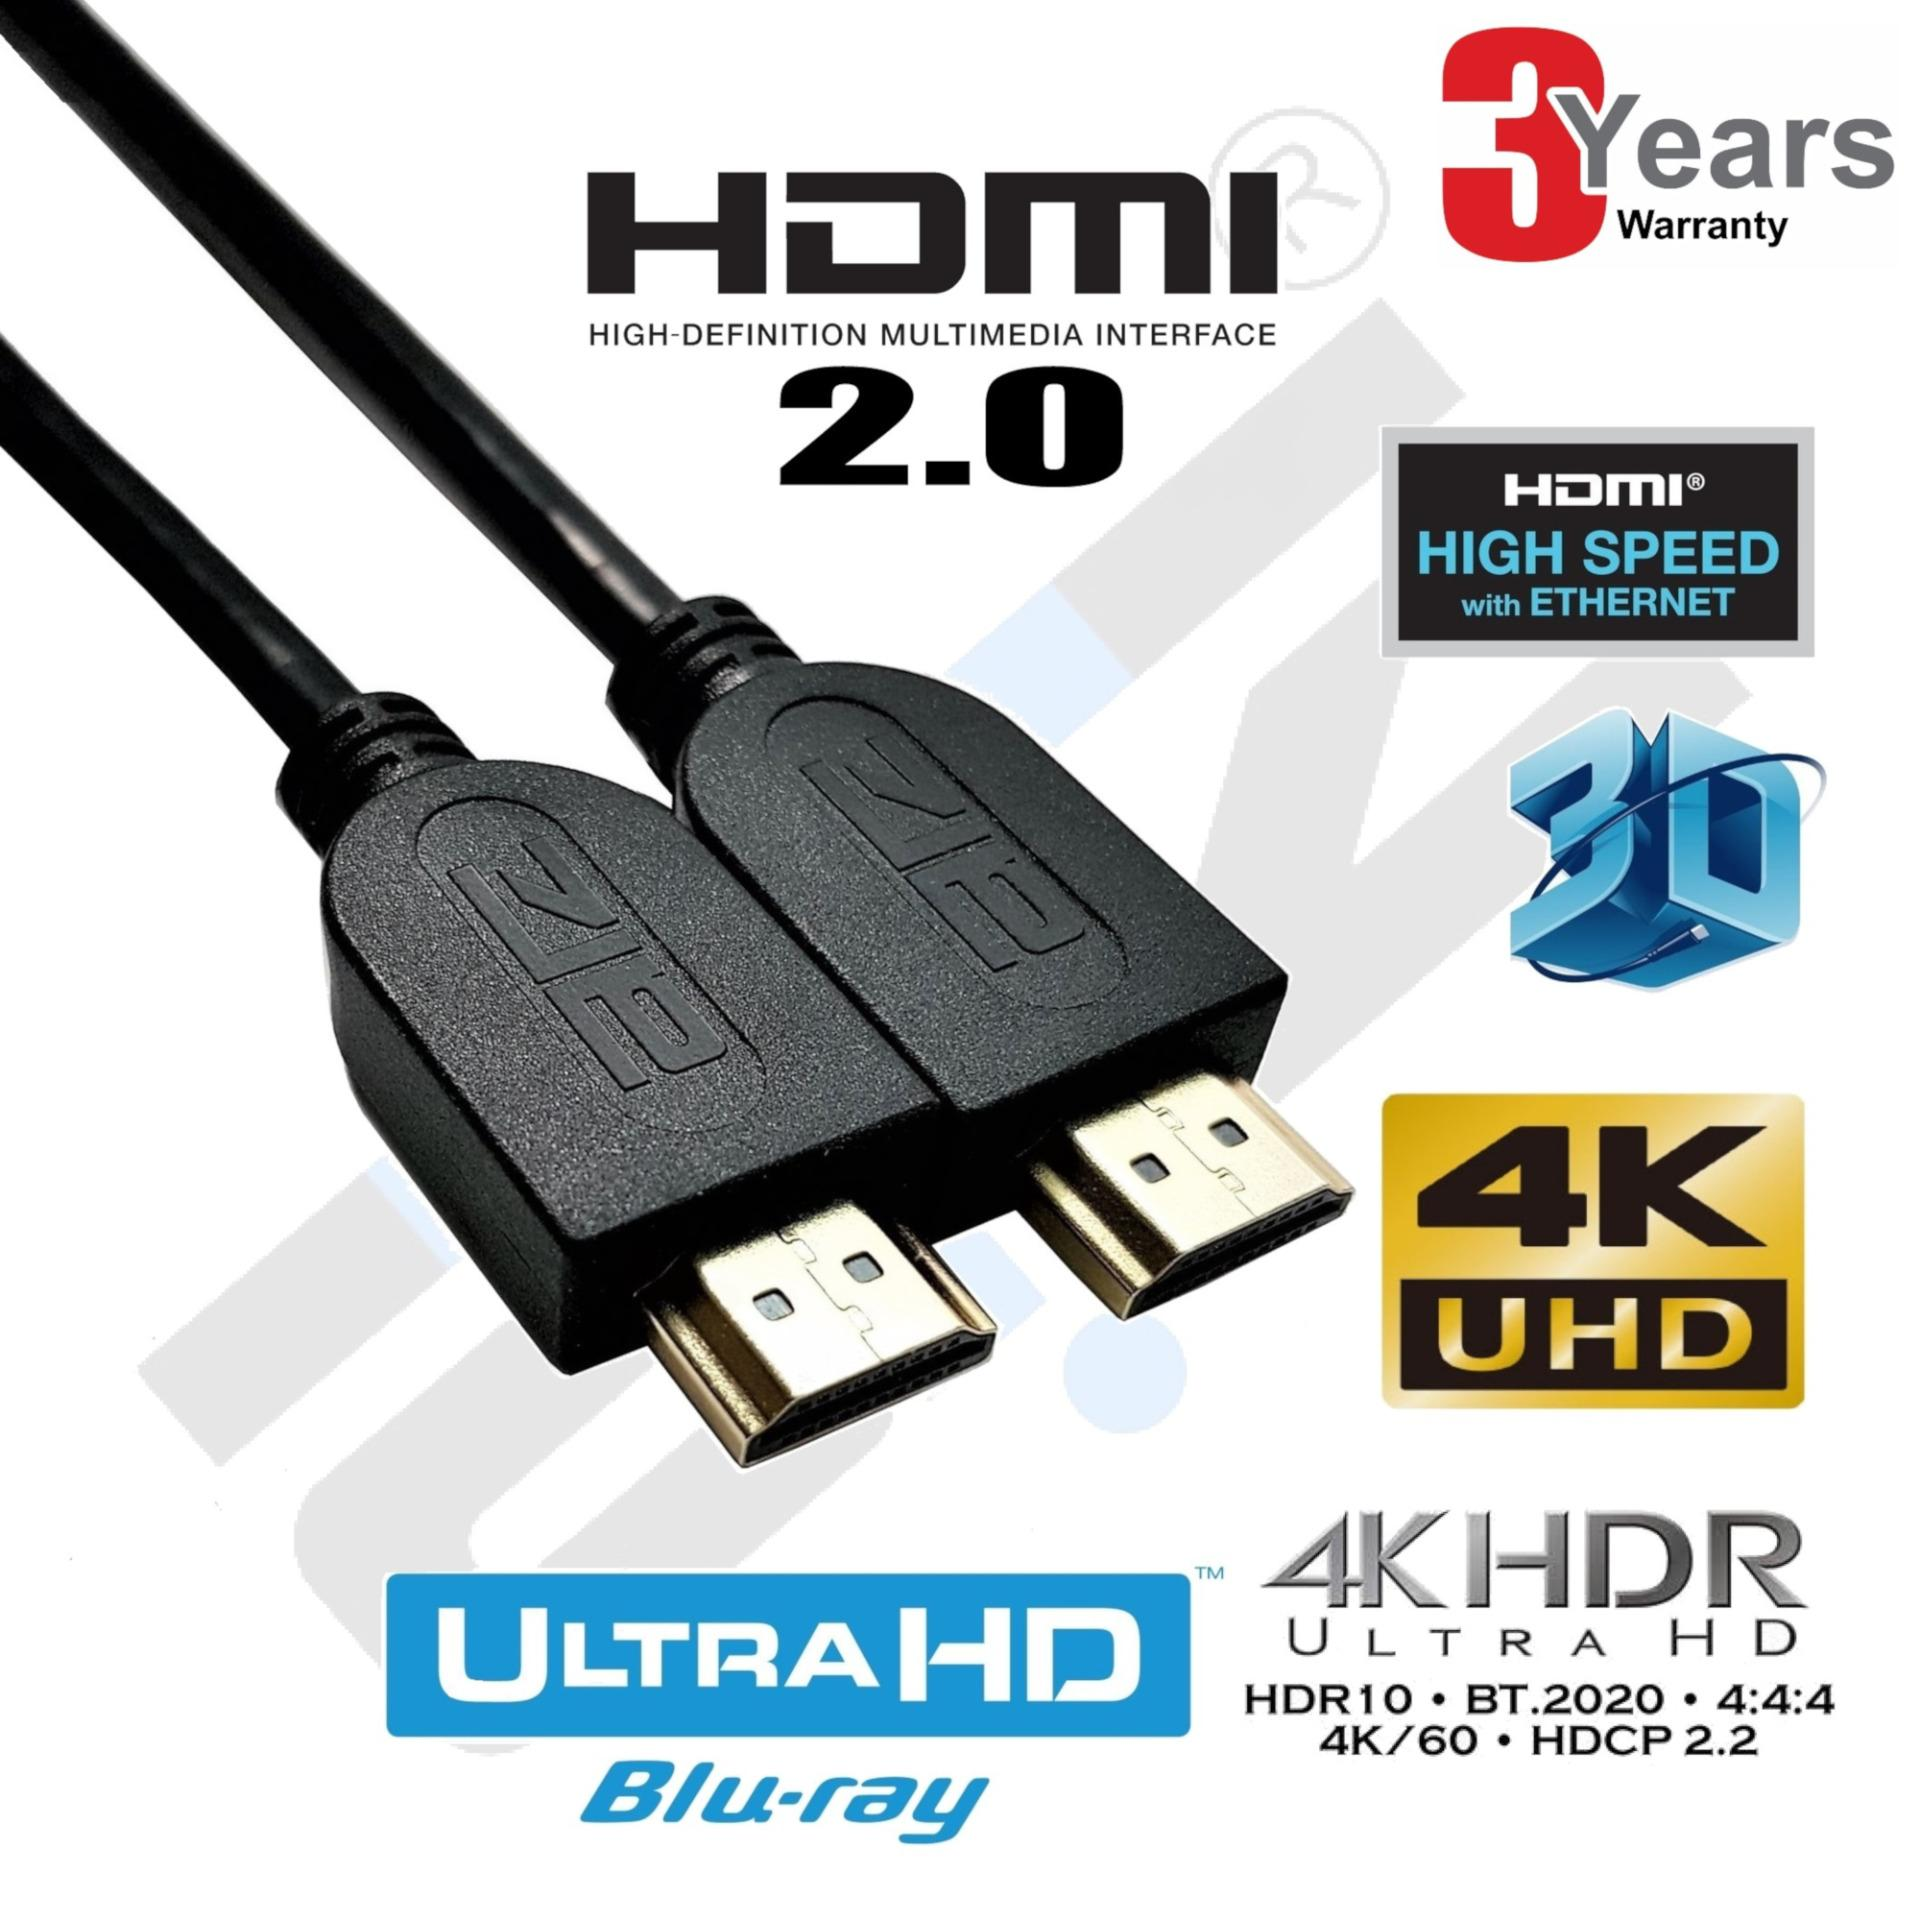 Atz High Speed Hdmi V2.0 Cable 4k With Ethernet - 1 Meter By Atz